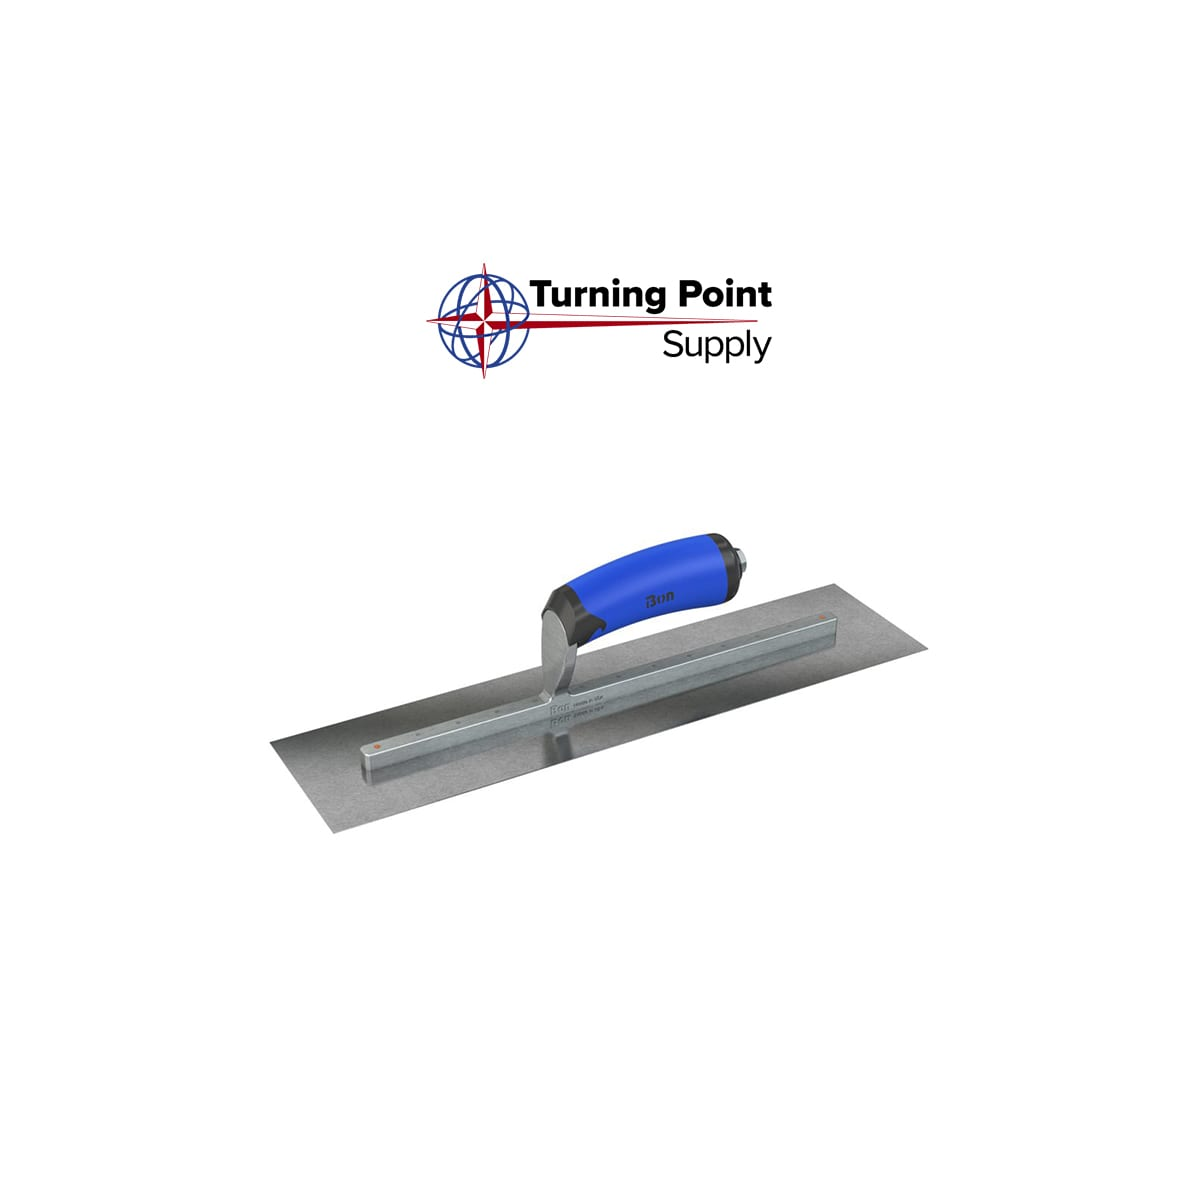 Right CARBON STEEL FINISHING TROWEL - SQUARE END - 20 X 5 - COMFORT WAVE HANDLE